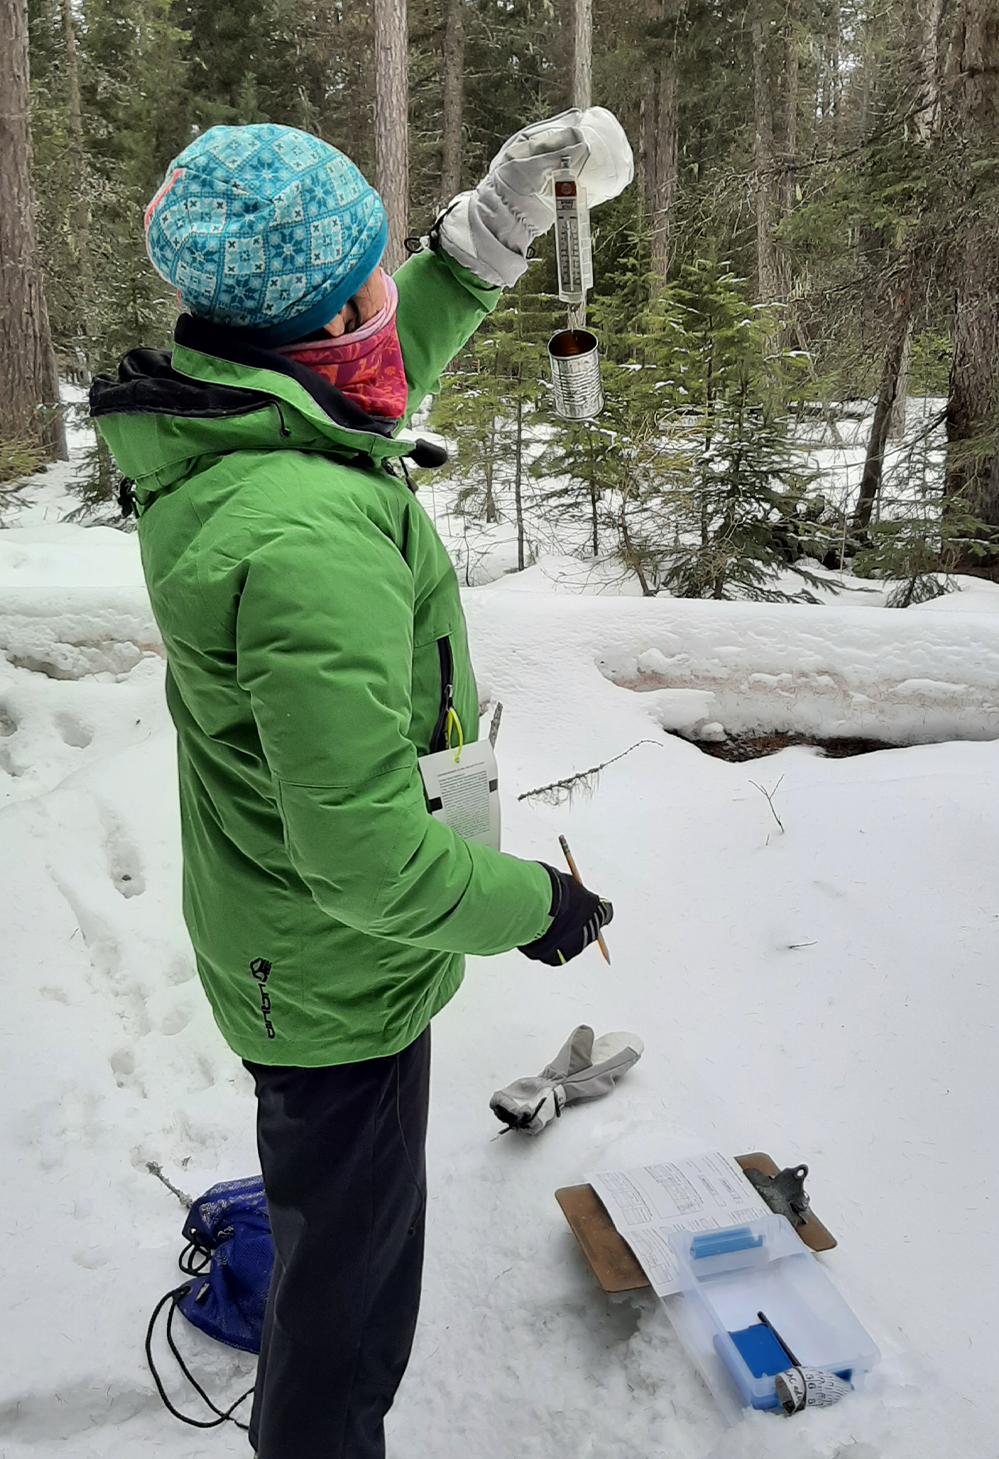 A teacher takes a snow sample outside during the winter session of the workshop Flathead Watershed Through The Seasons